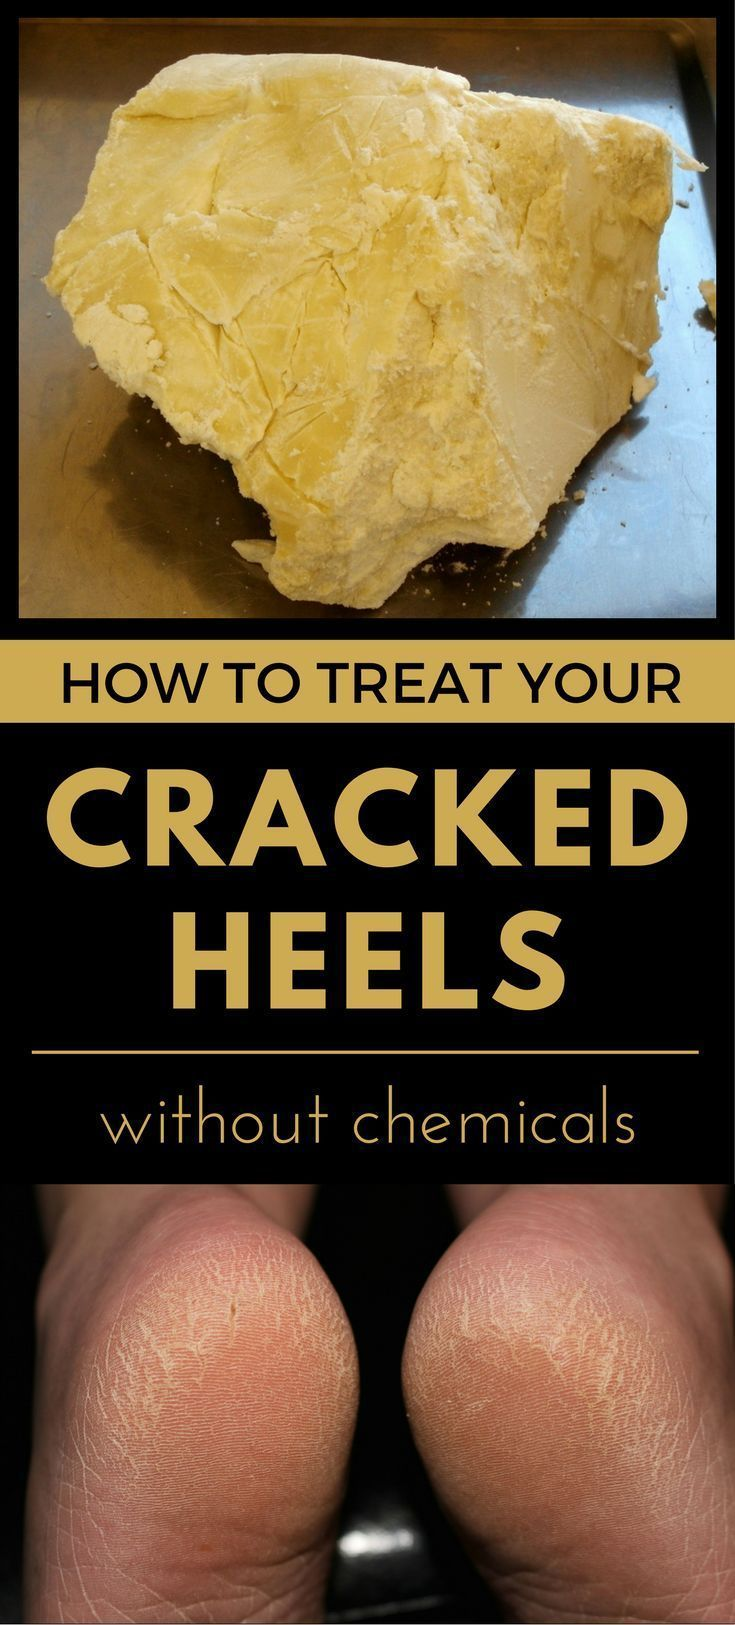 Cracked skin results from tiny splits that occur in dry damaged skin. If left u #crackedskinonheels Cracked skin results from tiny splits that occur in dry damaged skin. If left u #crackedskinonheels Cracked skin results from tiny splits that occur in dry damaged skin. If left u #crackedskinonheels Cracked skin results from tiny splits that occur in dry damaged skin. If left u #crackedskinonheels